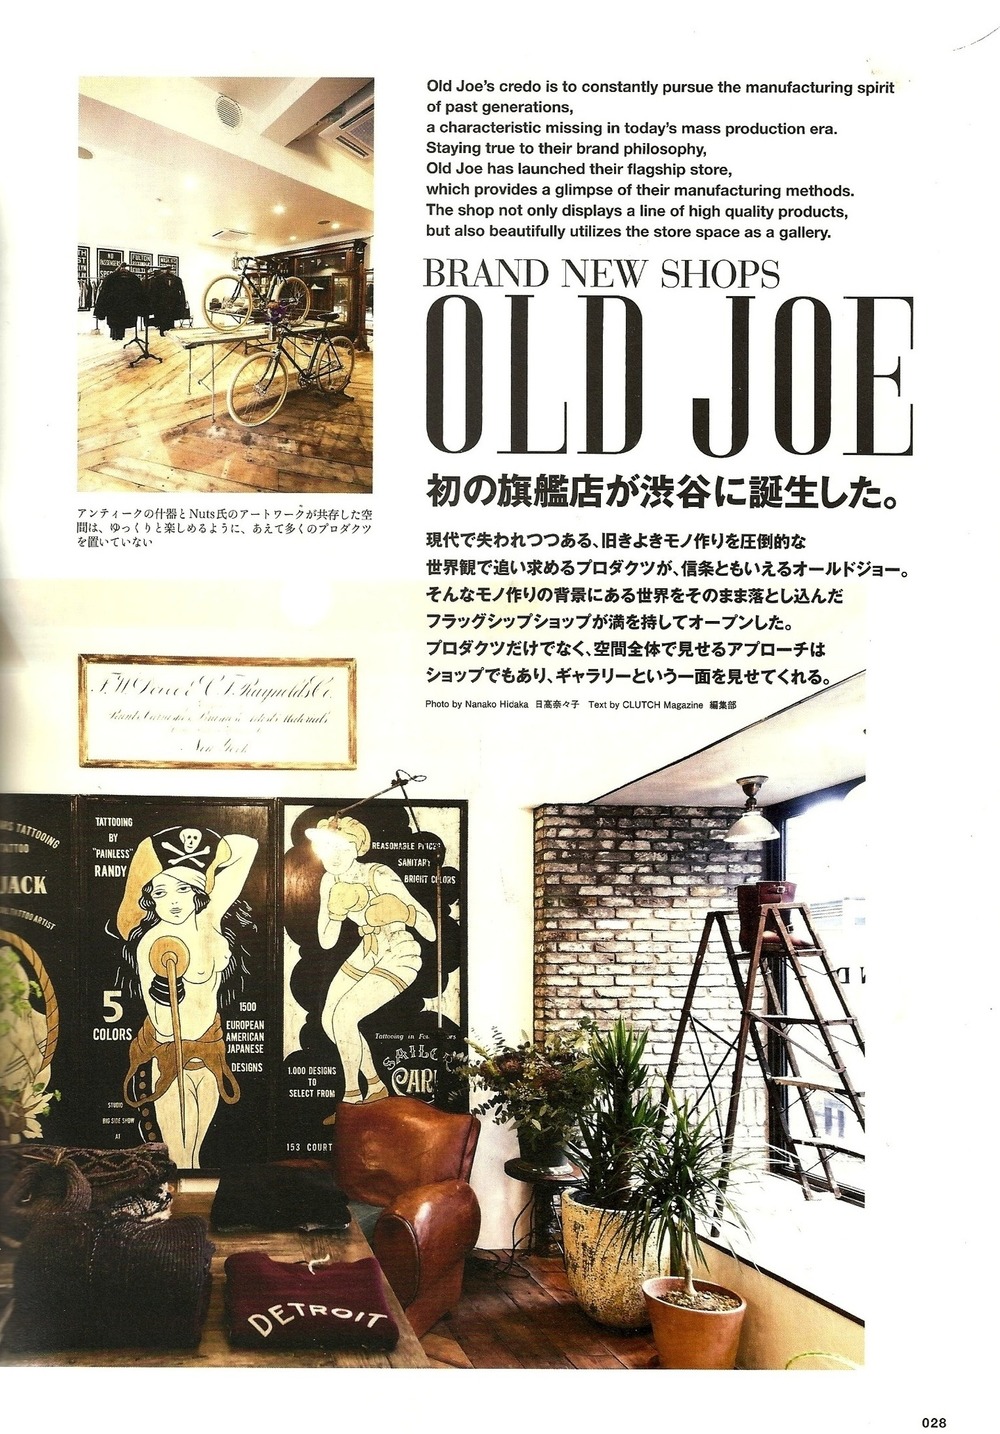 Clutch Magazine Old Joe Opening-1.jpg